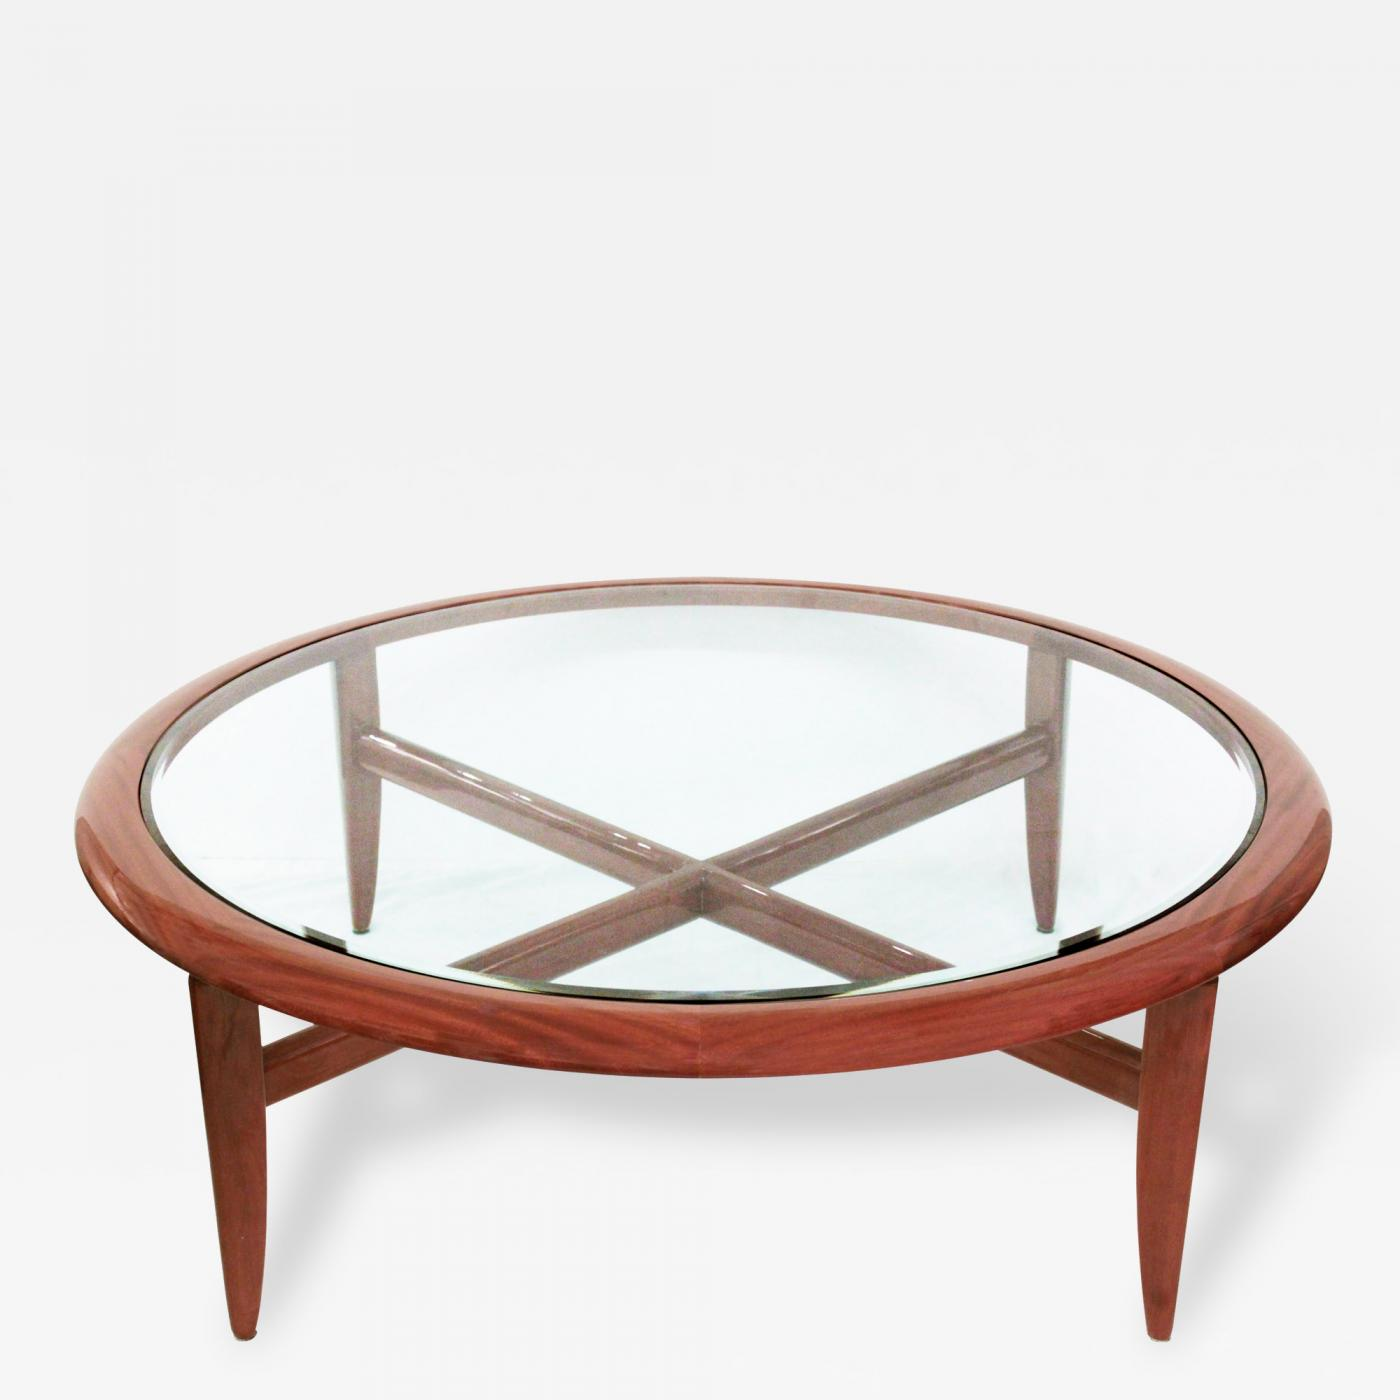 adam tihany mahogany coffee table by adam tihany for pace collection